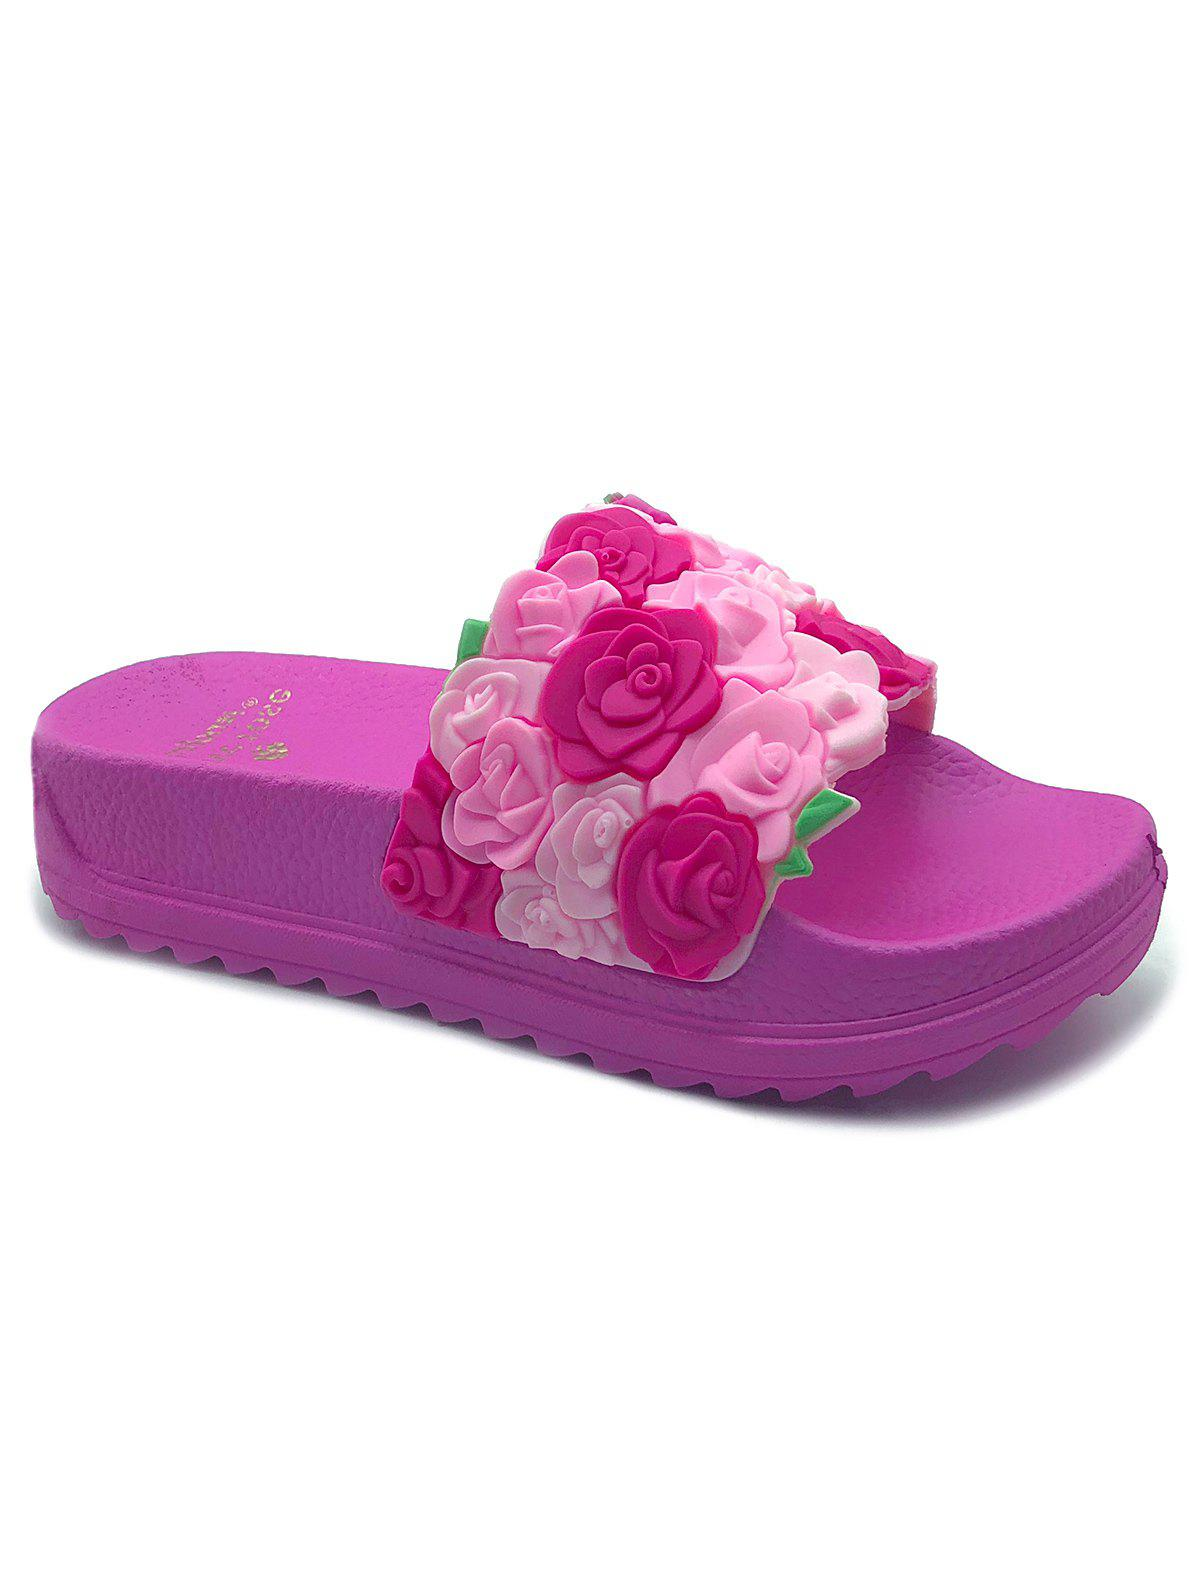 Buy Roses Slip On Indoor and Outdoor Platform Slippers